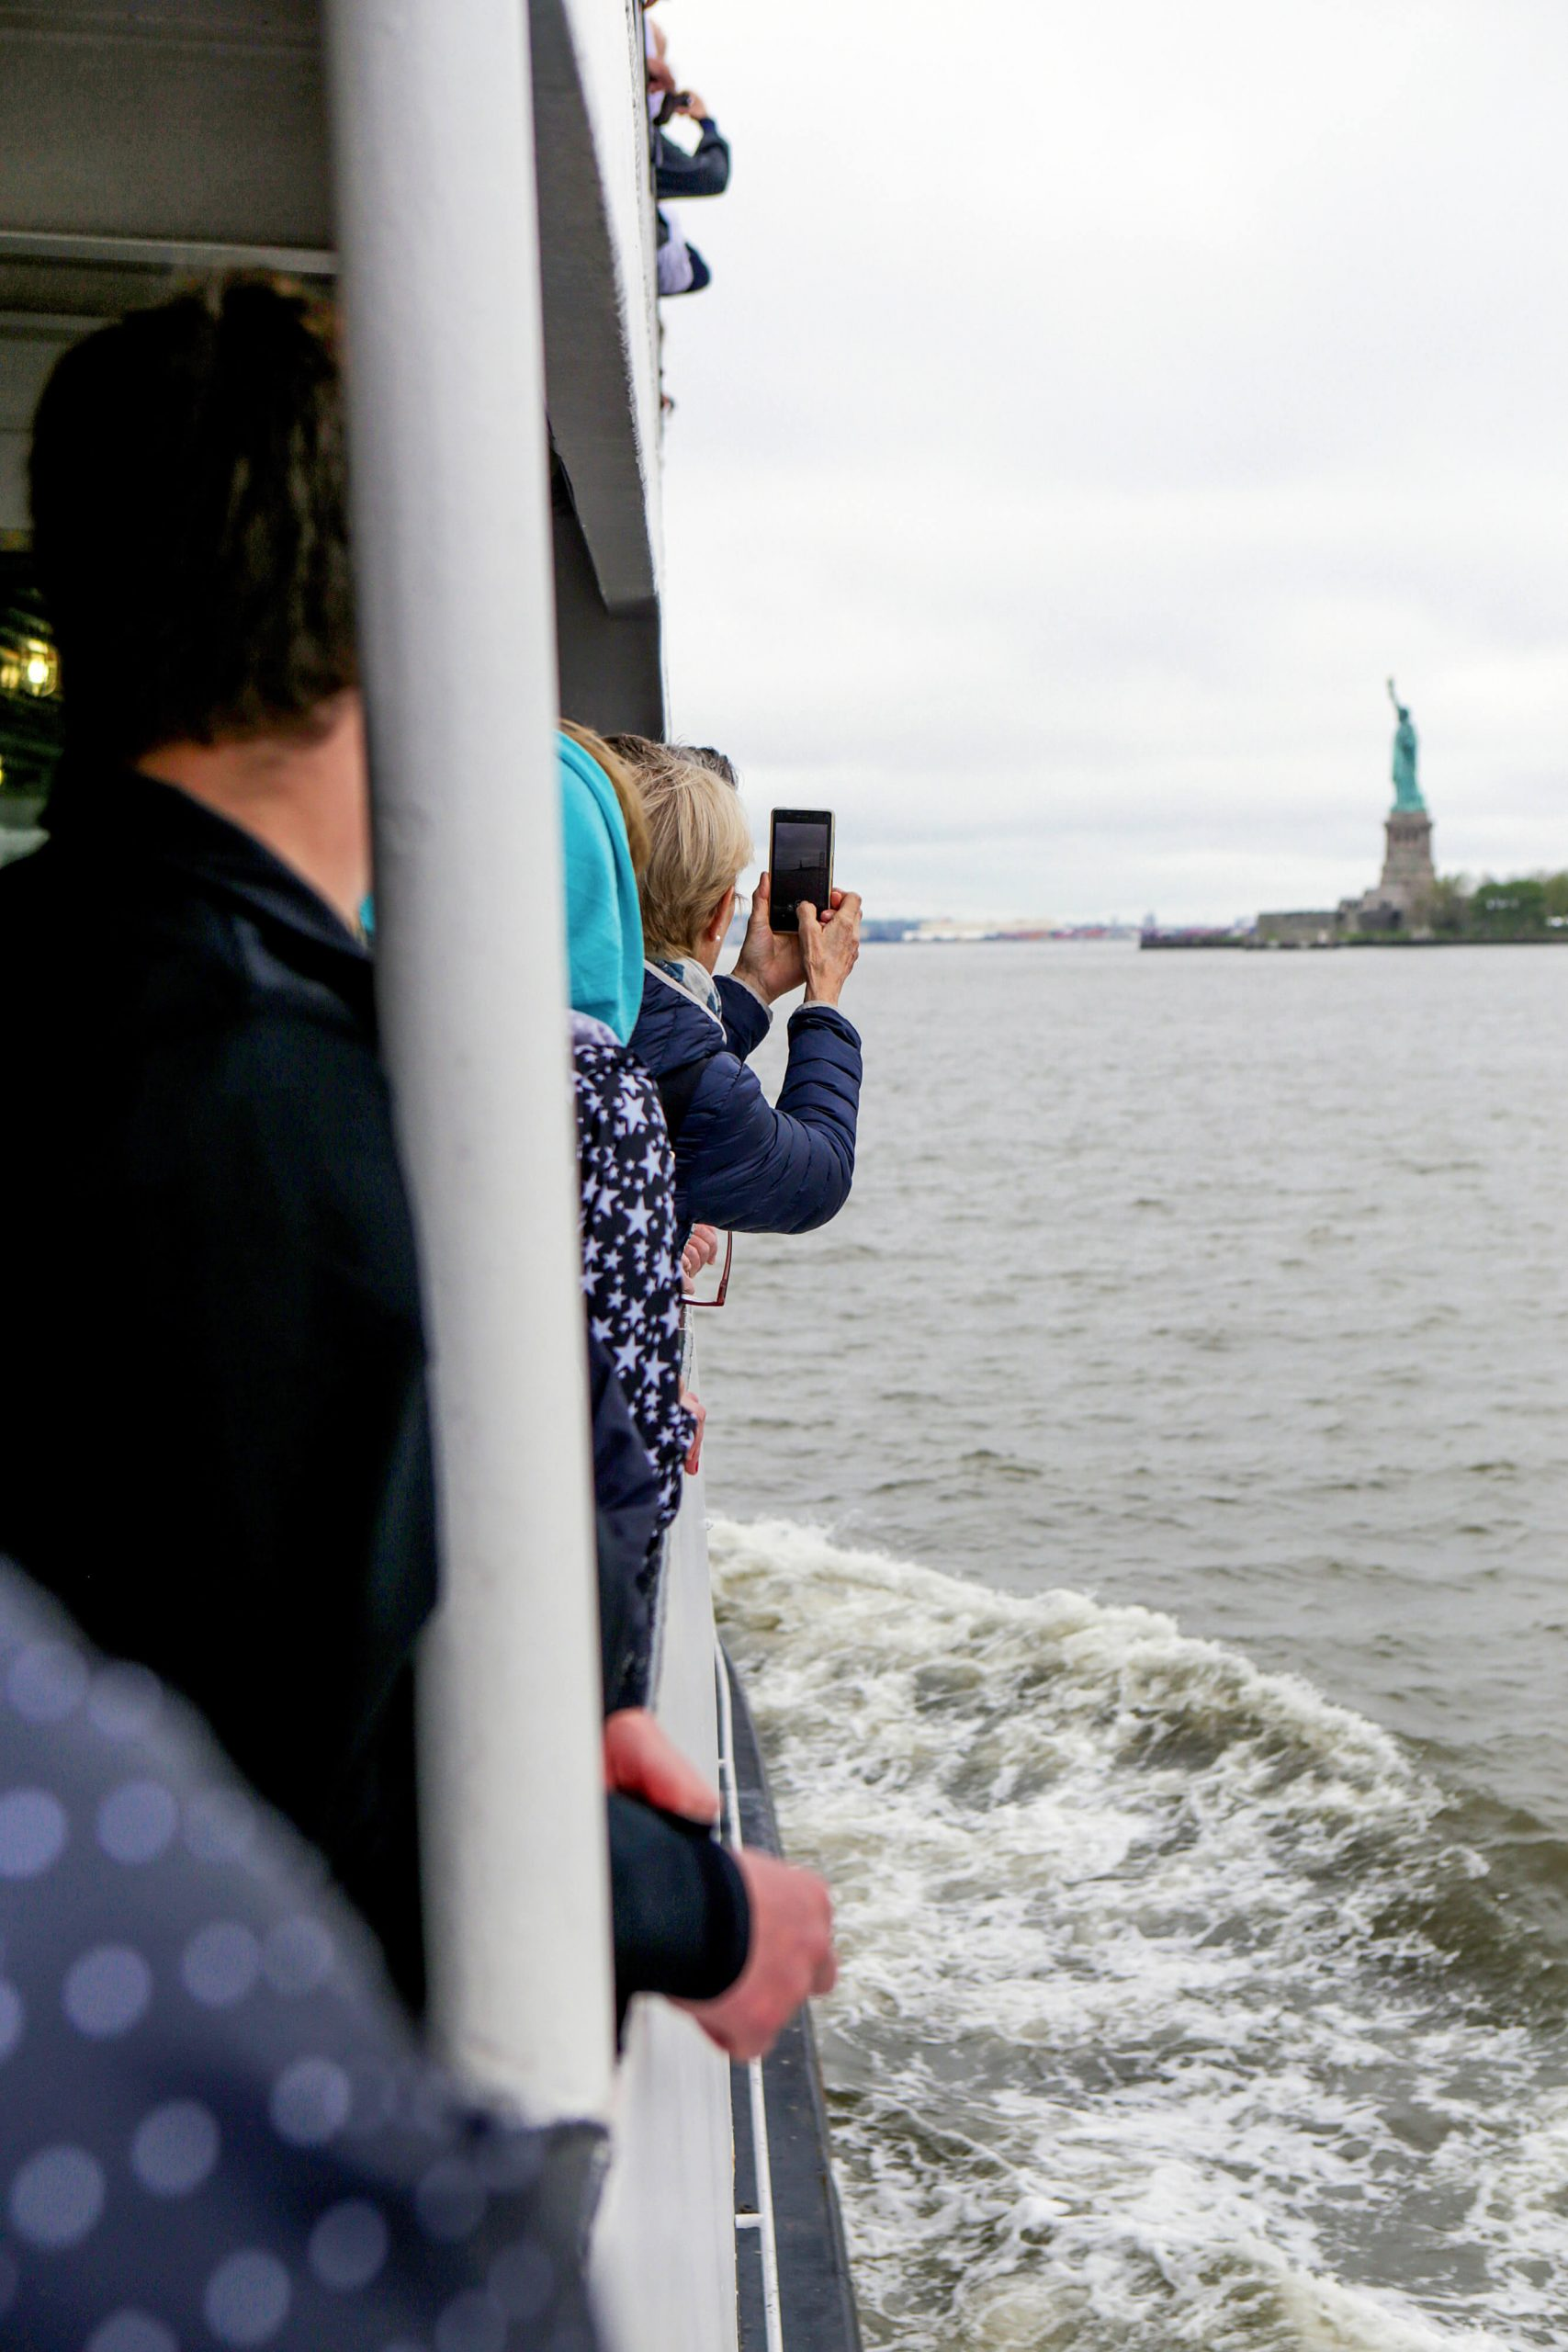 On the boat to the statue of liberty